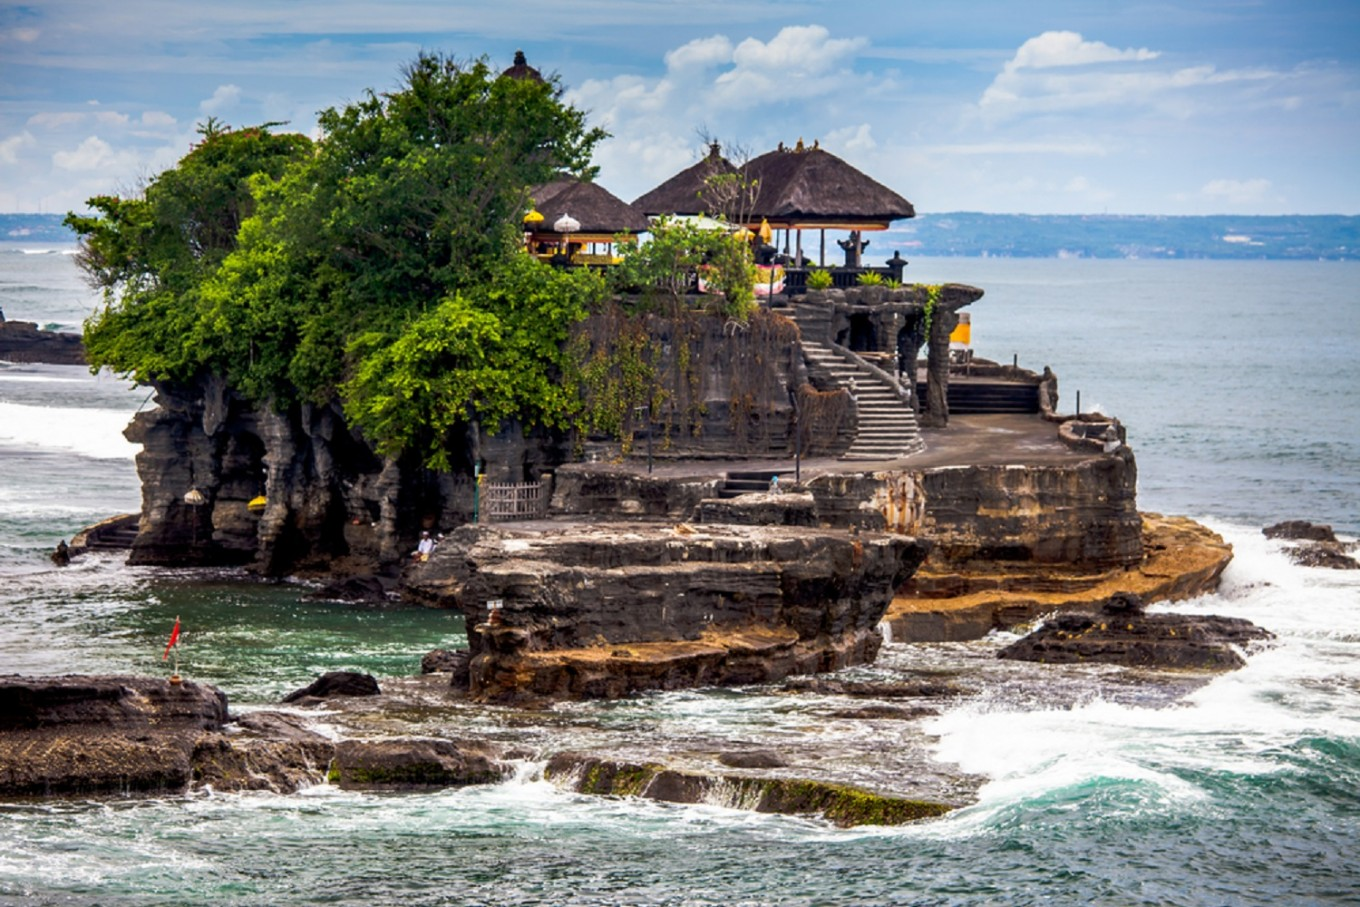 Bali beckons again, following volcanic eruptions